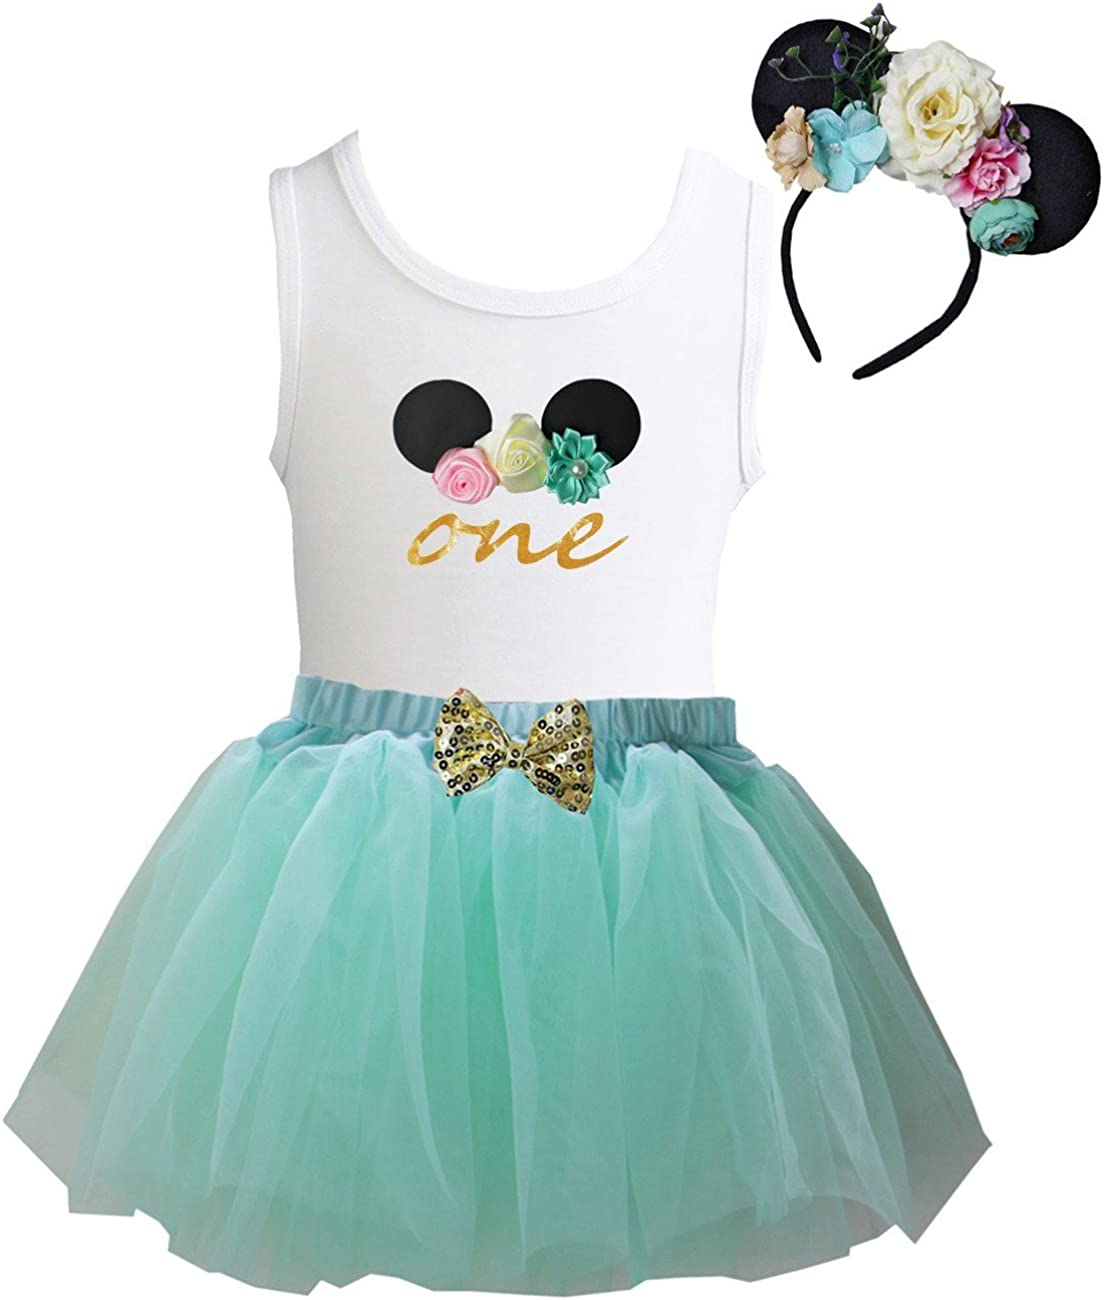 Kirei Sui Mint Pink Tulle Tutu 1st 5th Birthday Tee /& Floral Mouse Headband Outfit